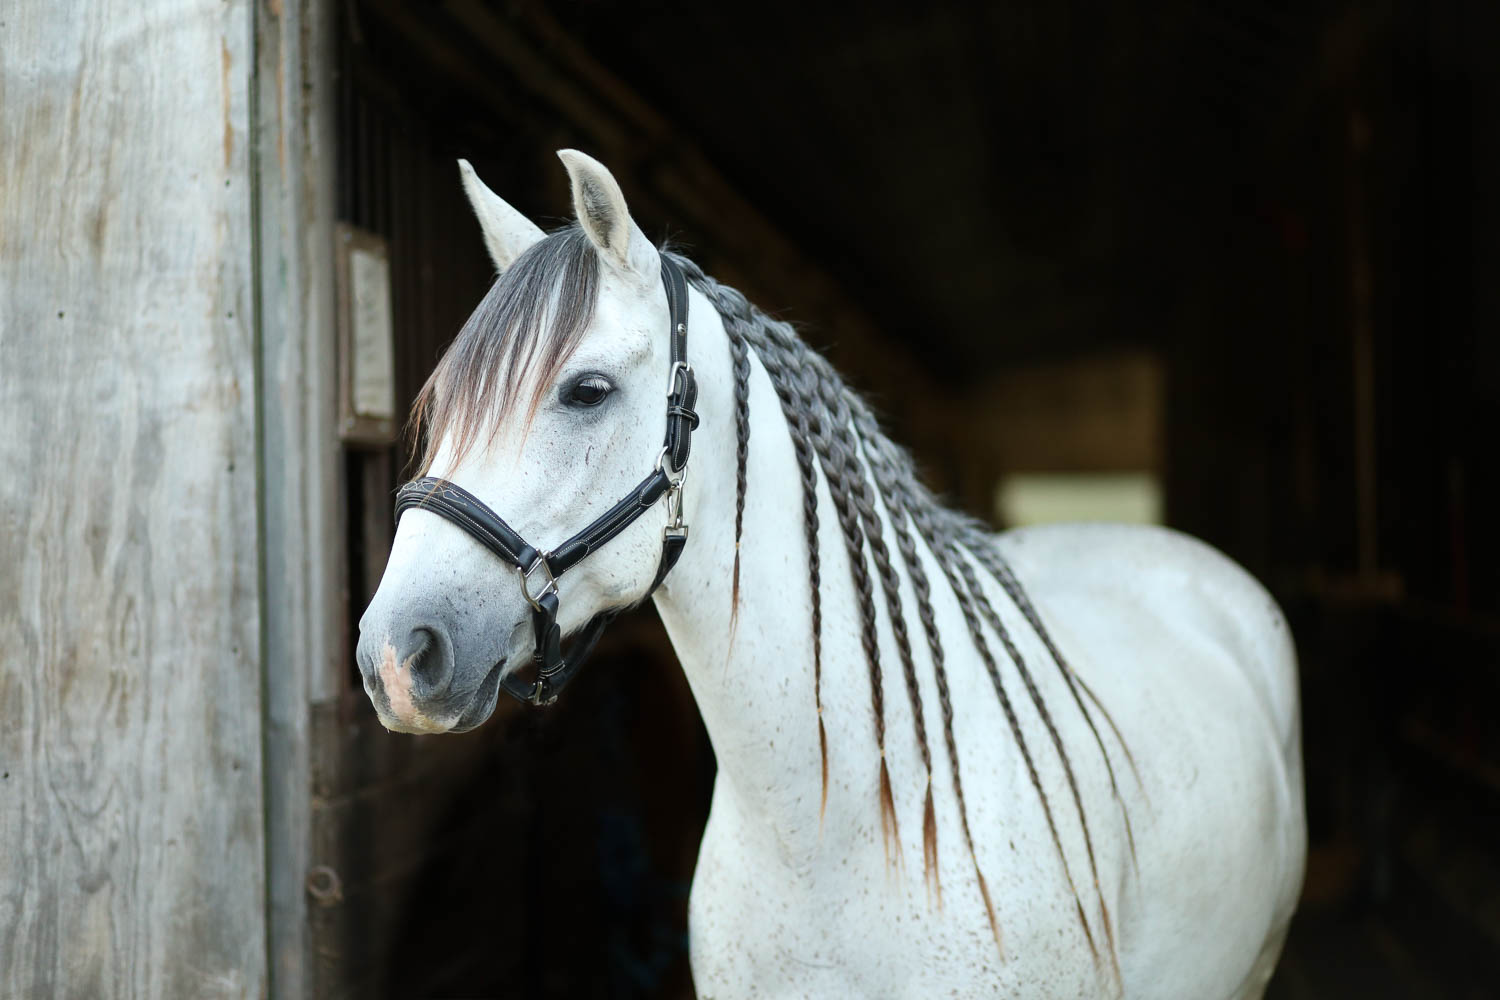 azteca horse braided mane at double H stables in stillwater minnesota